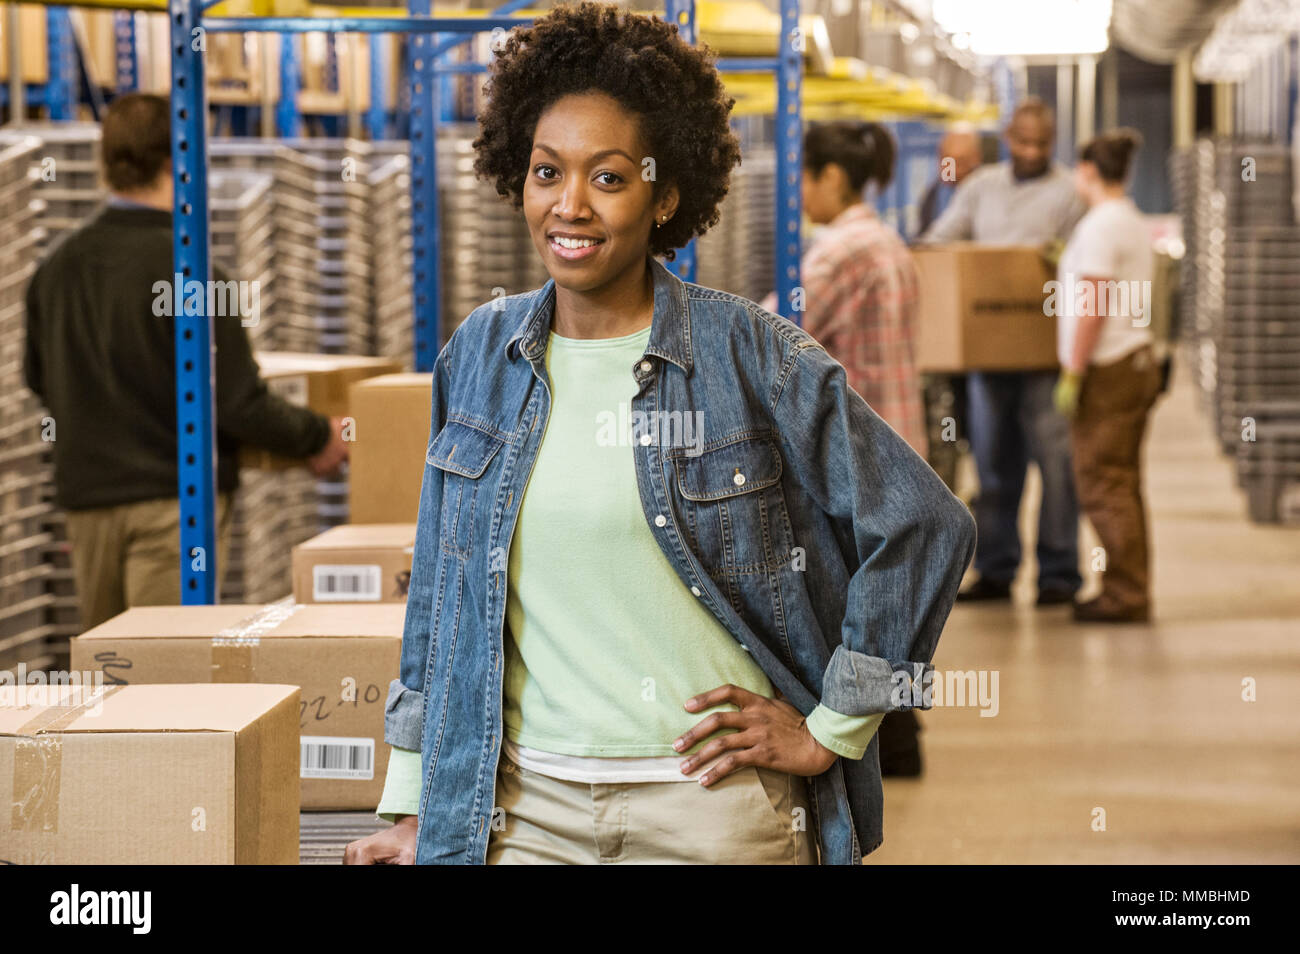 Portrait of an African American female warehouse worker in a large distribution warehouse with products stored in cardboard boxes. - Stock Image